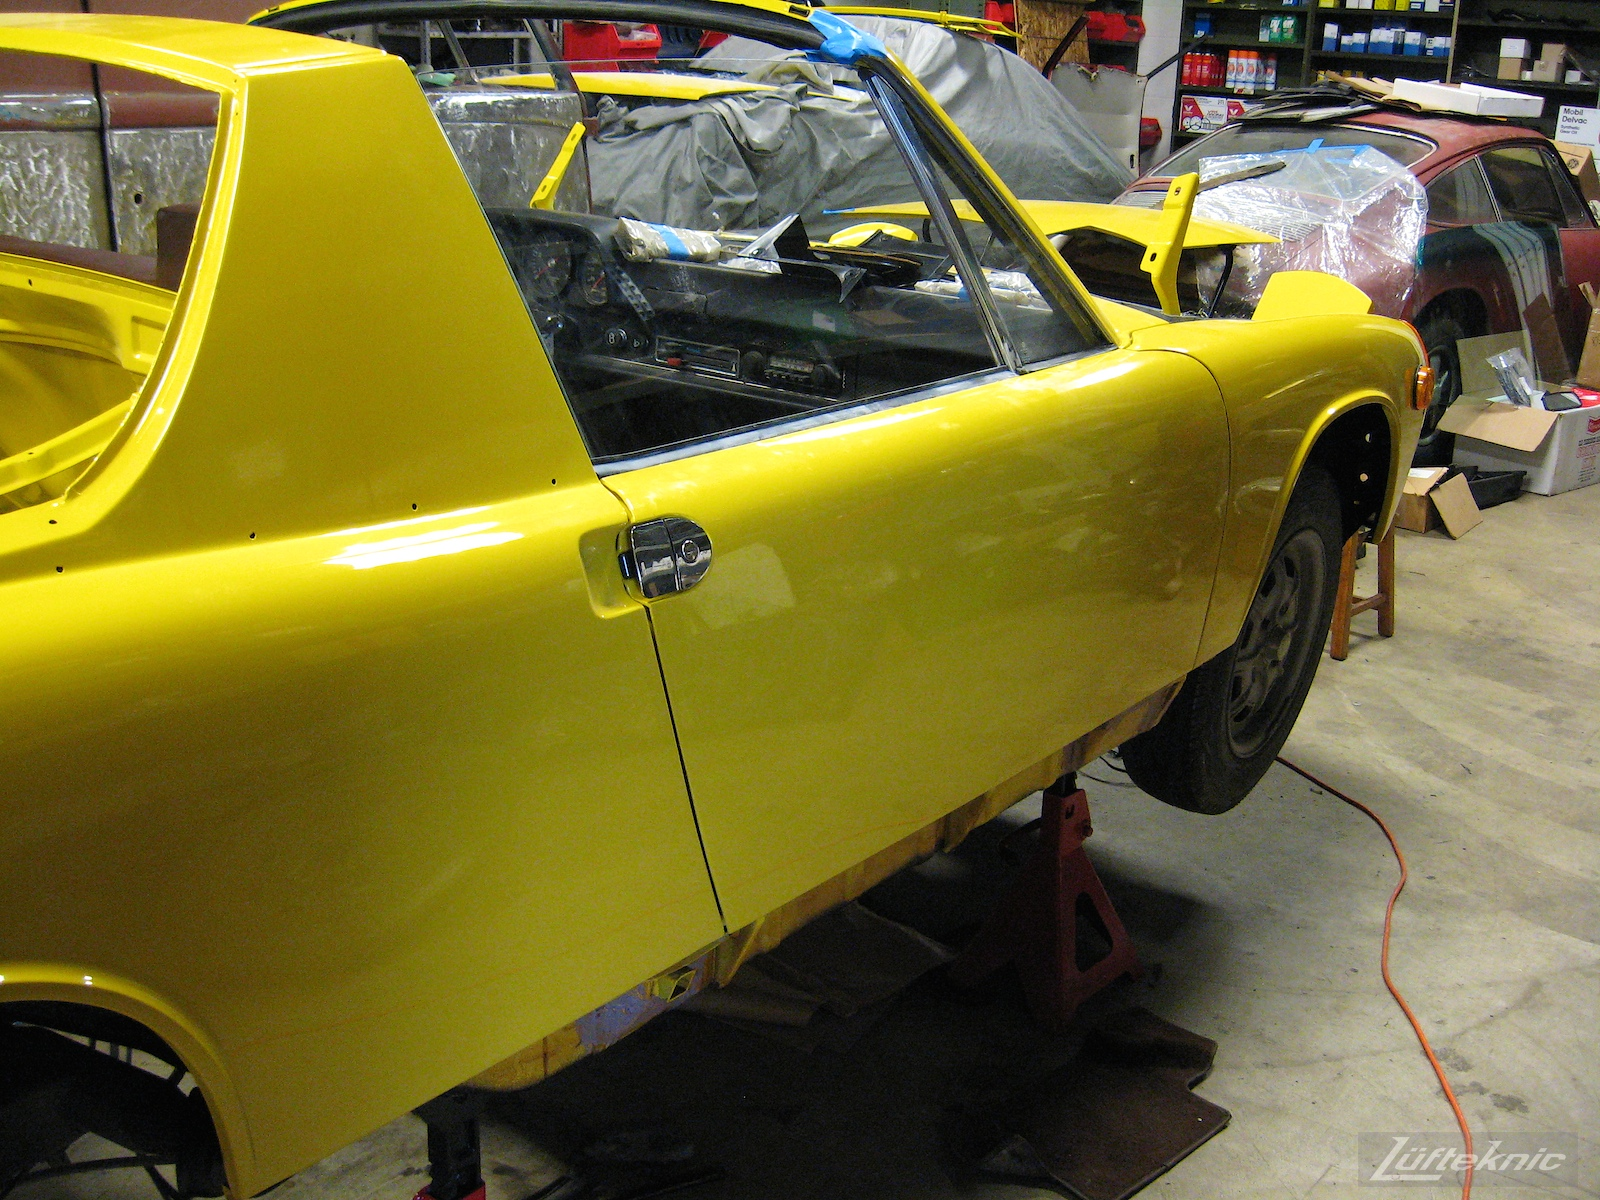 Reassembling a restored yellow Porsche 914 at Lufteknic.